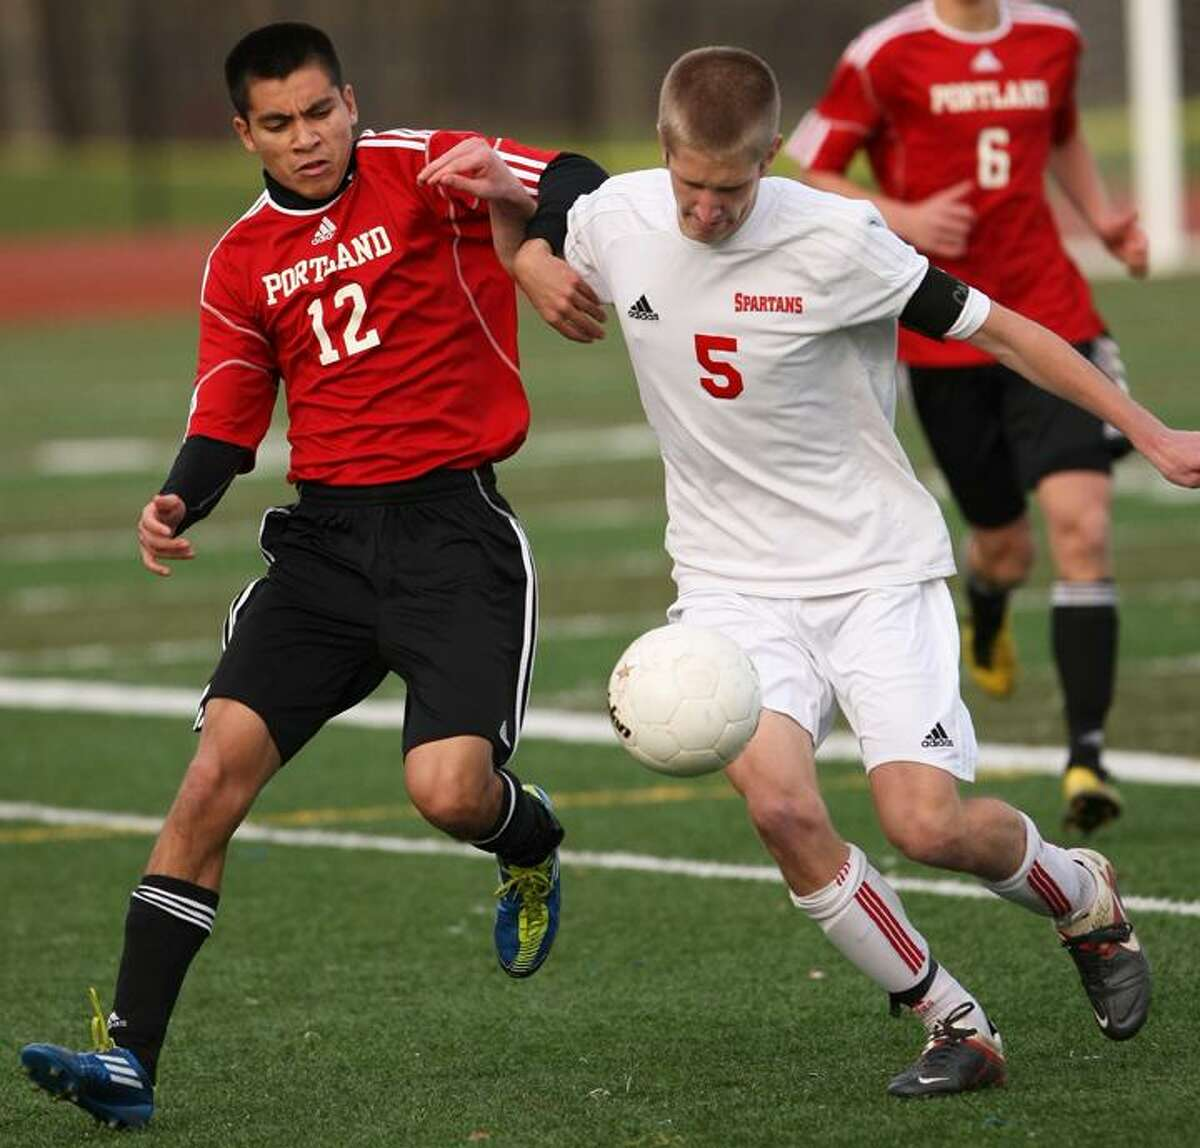 Special to the Press 11.19.11. Portland's Jesse Petrini battles Somers' Don Whittle in Saturday's class S semifinal soccer game. Somers won, 3-1. To buy a glossy print of this photo and more, visit www.middletownpress.com